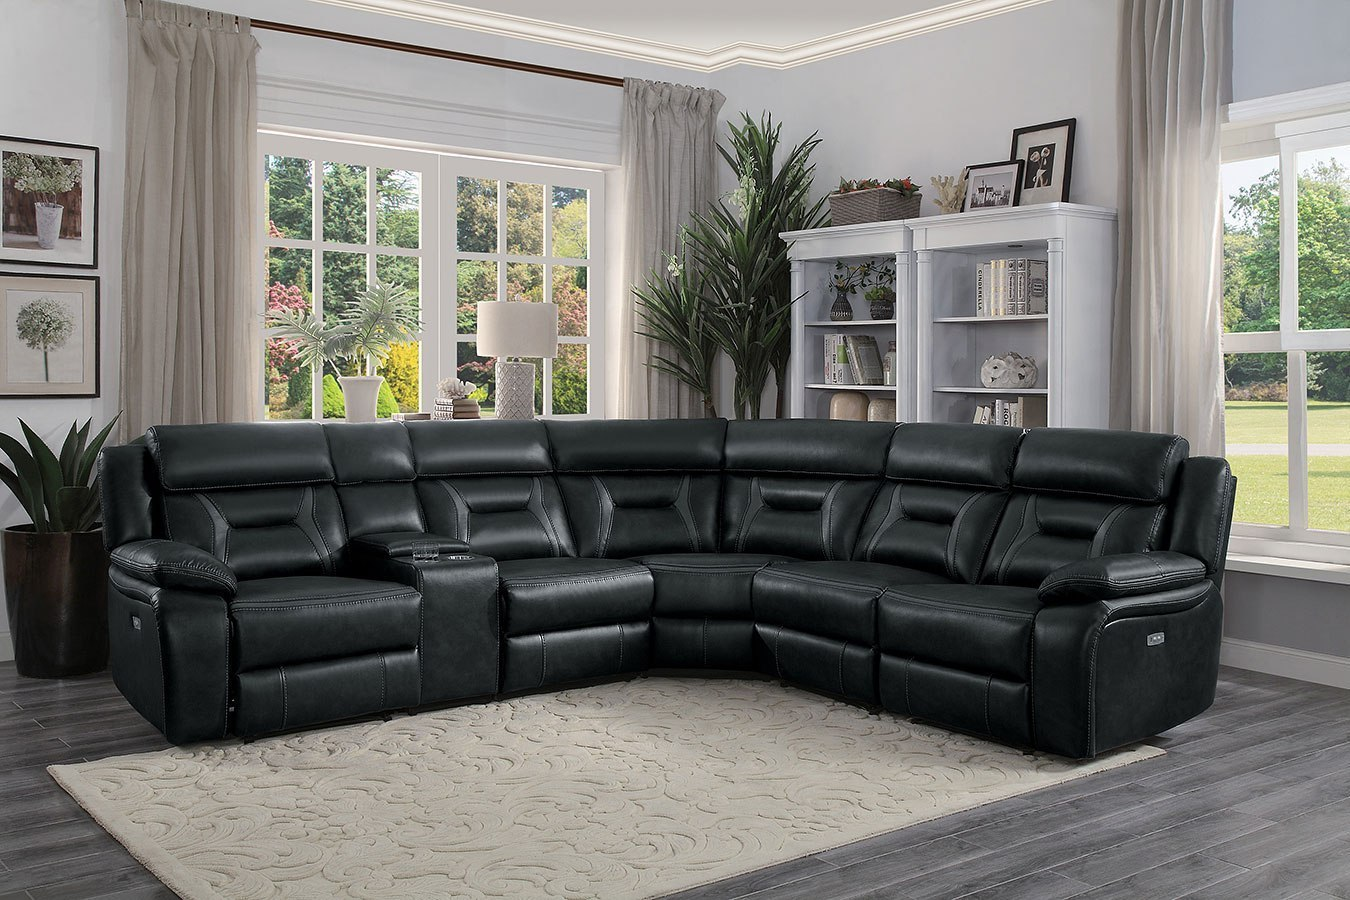 Amite Power Reclining Sectional Dark Gray By Homelegance